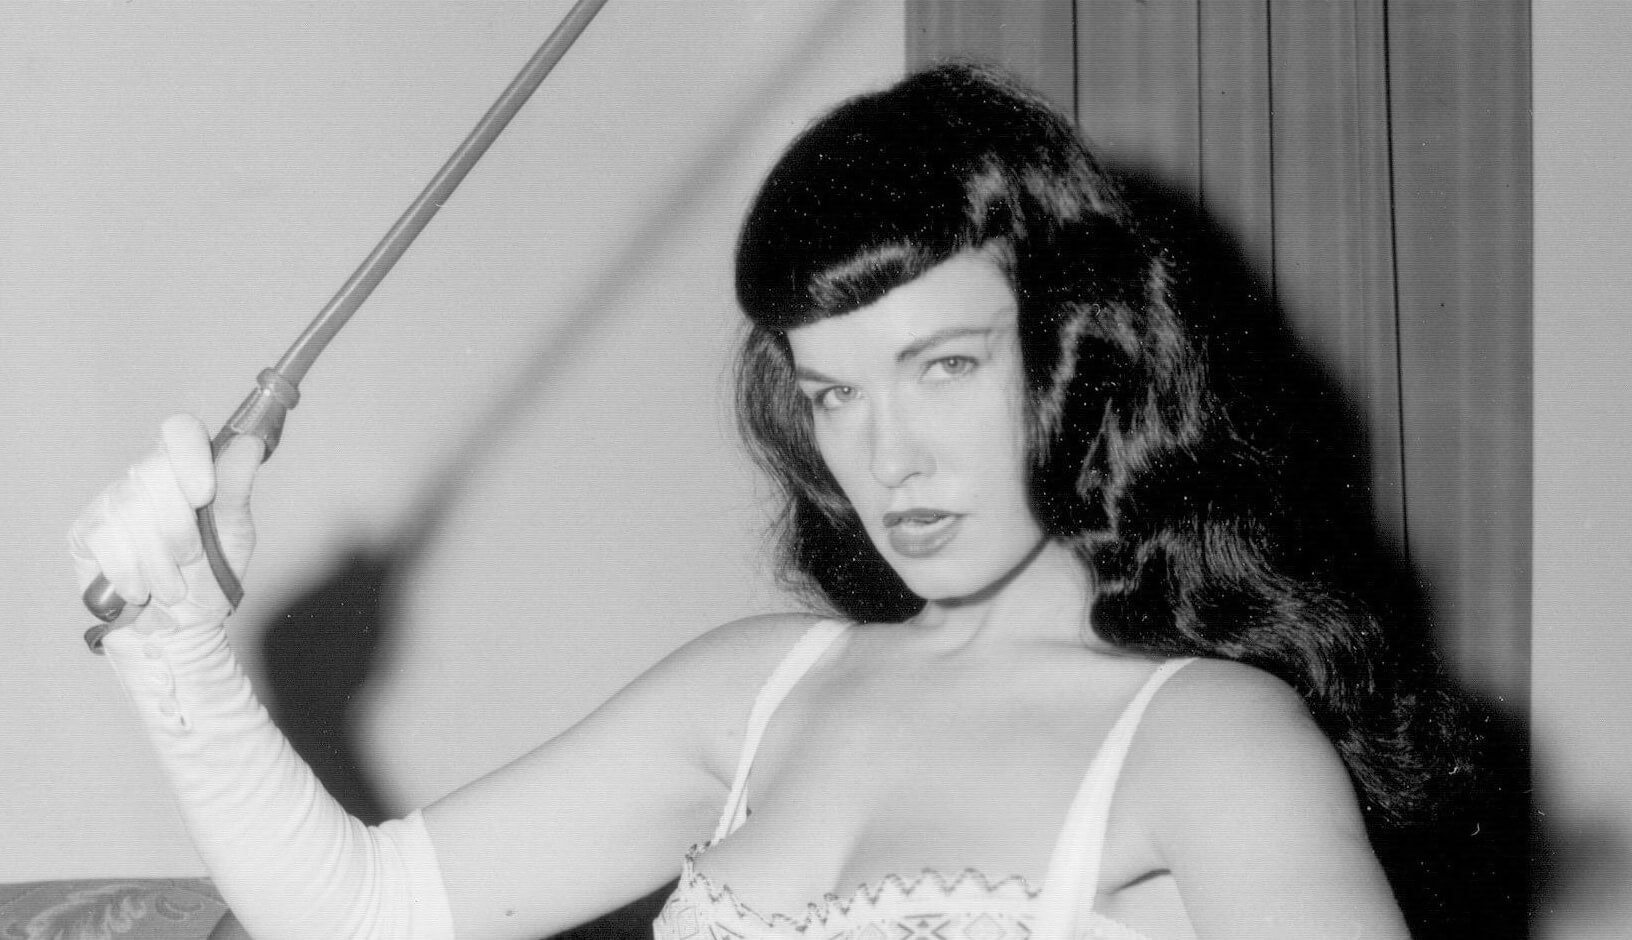 A black and white photo of Bettie Page with a riding crop